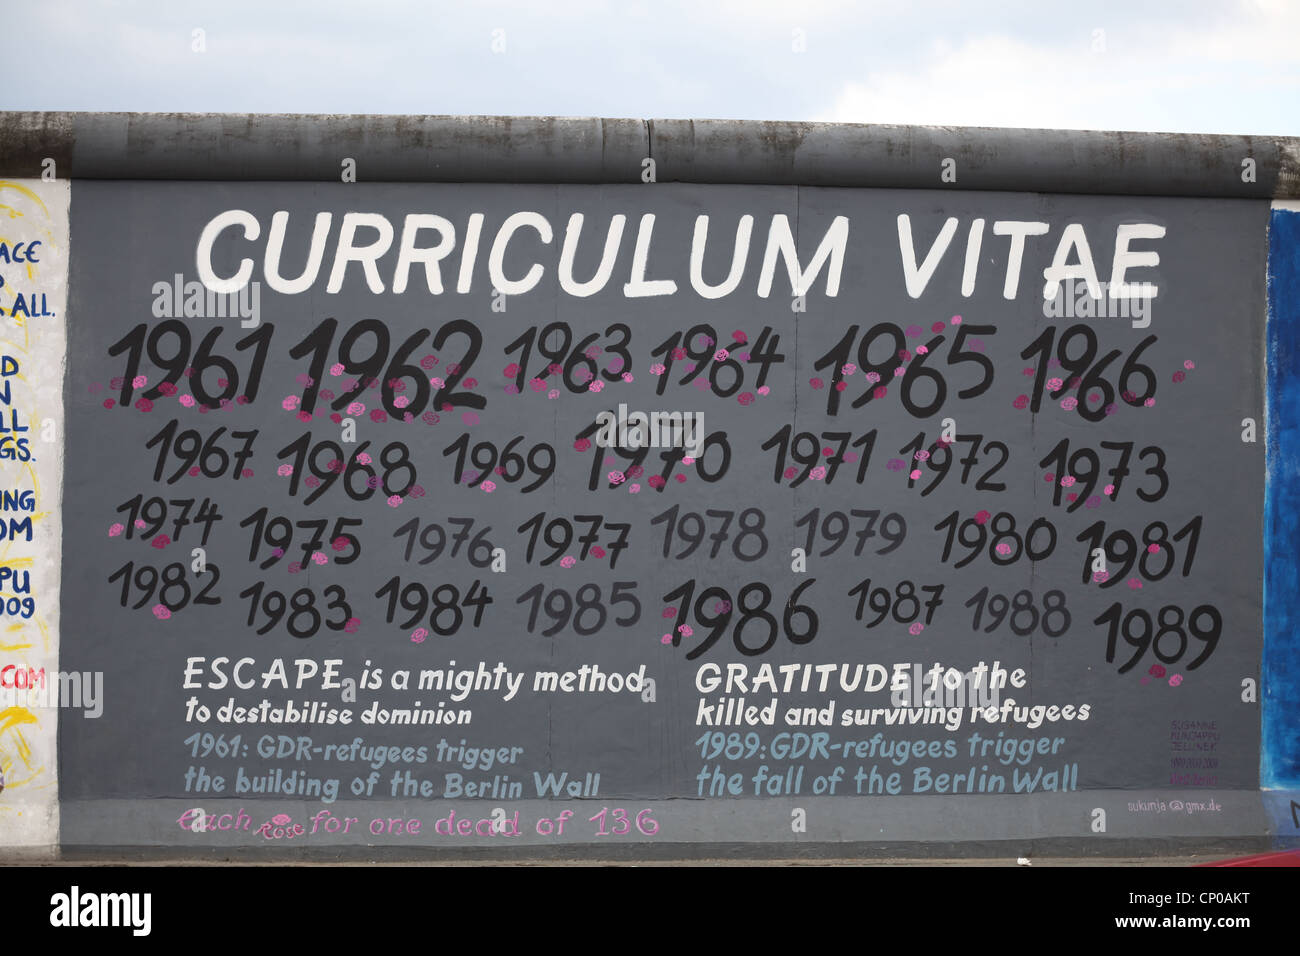 4743688e77663 Berlin wall East Side Gallery Curriculum Vitae by Susanne Kunjappu Jellinek